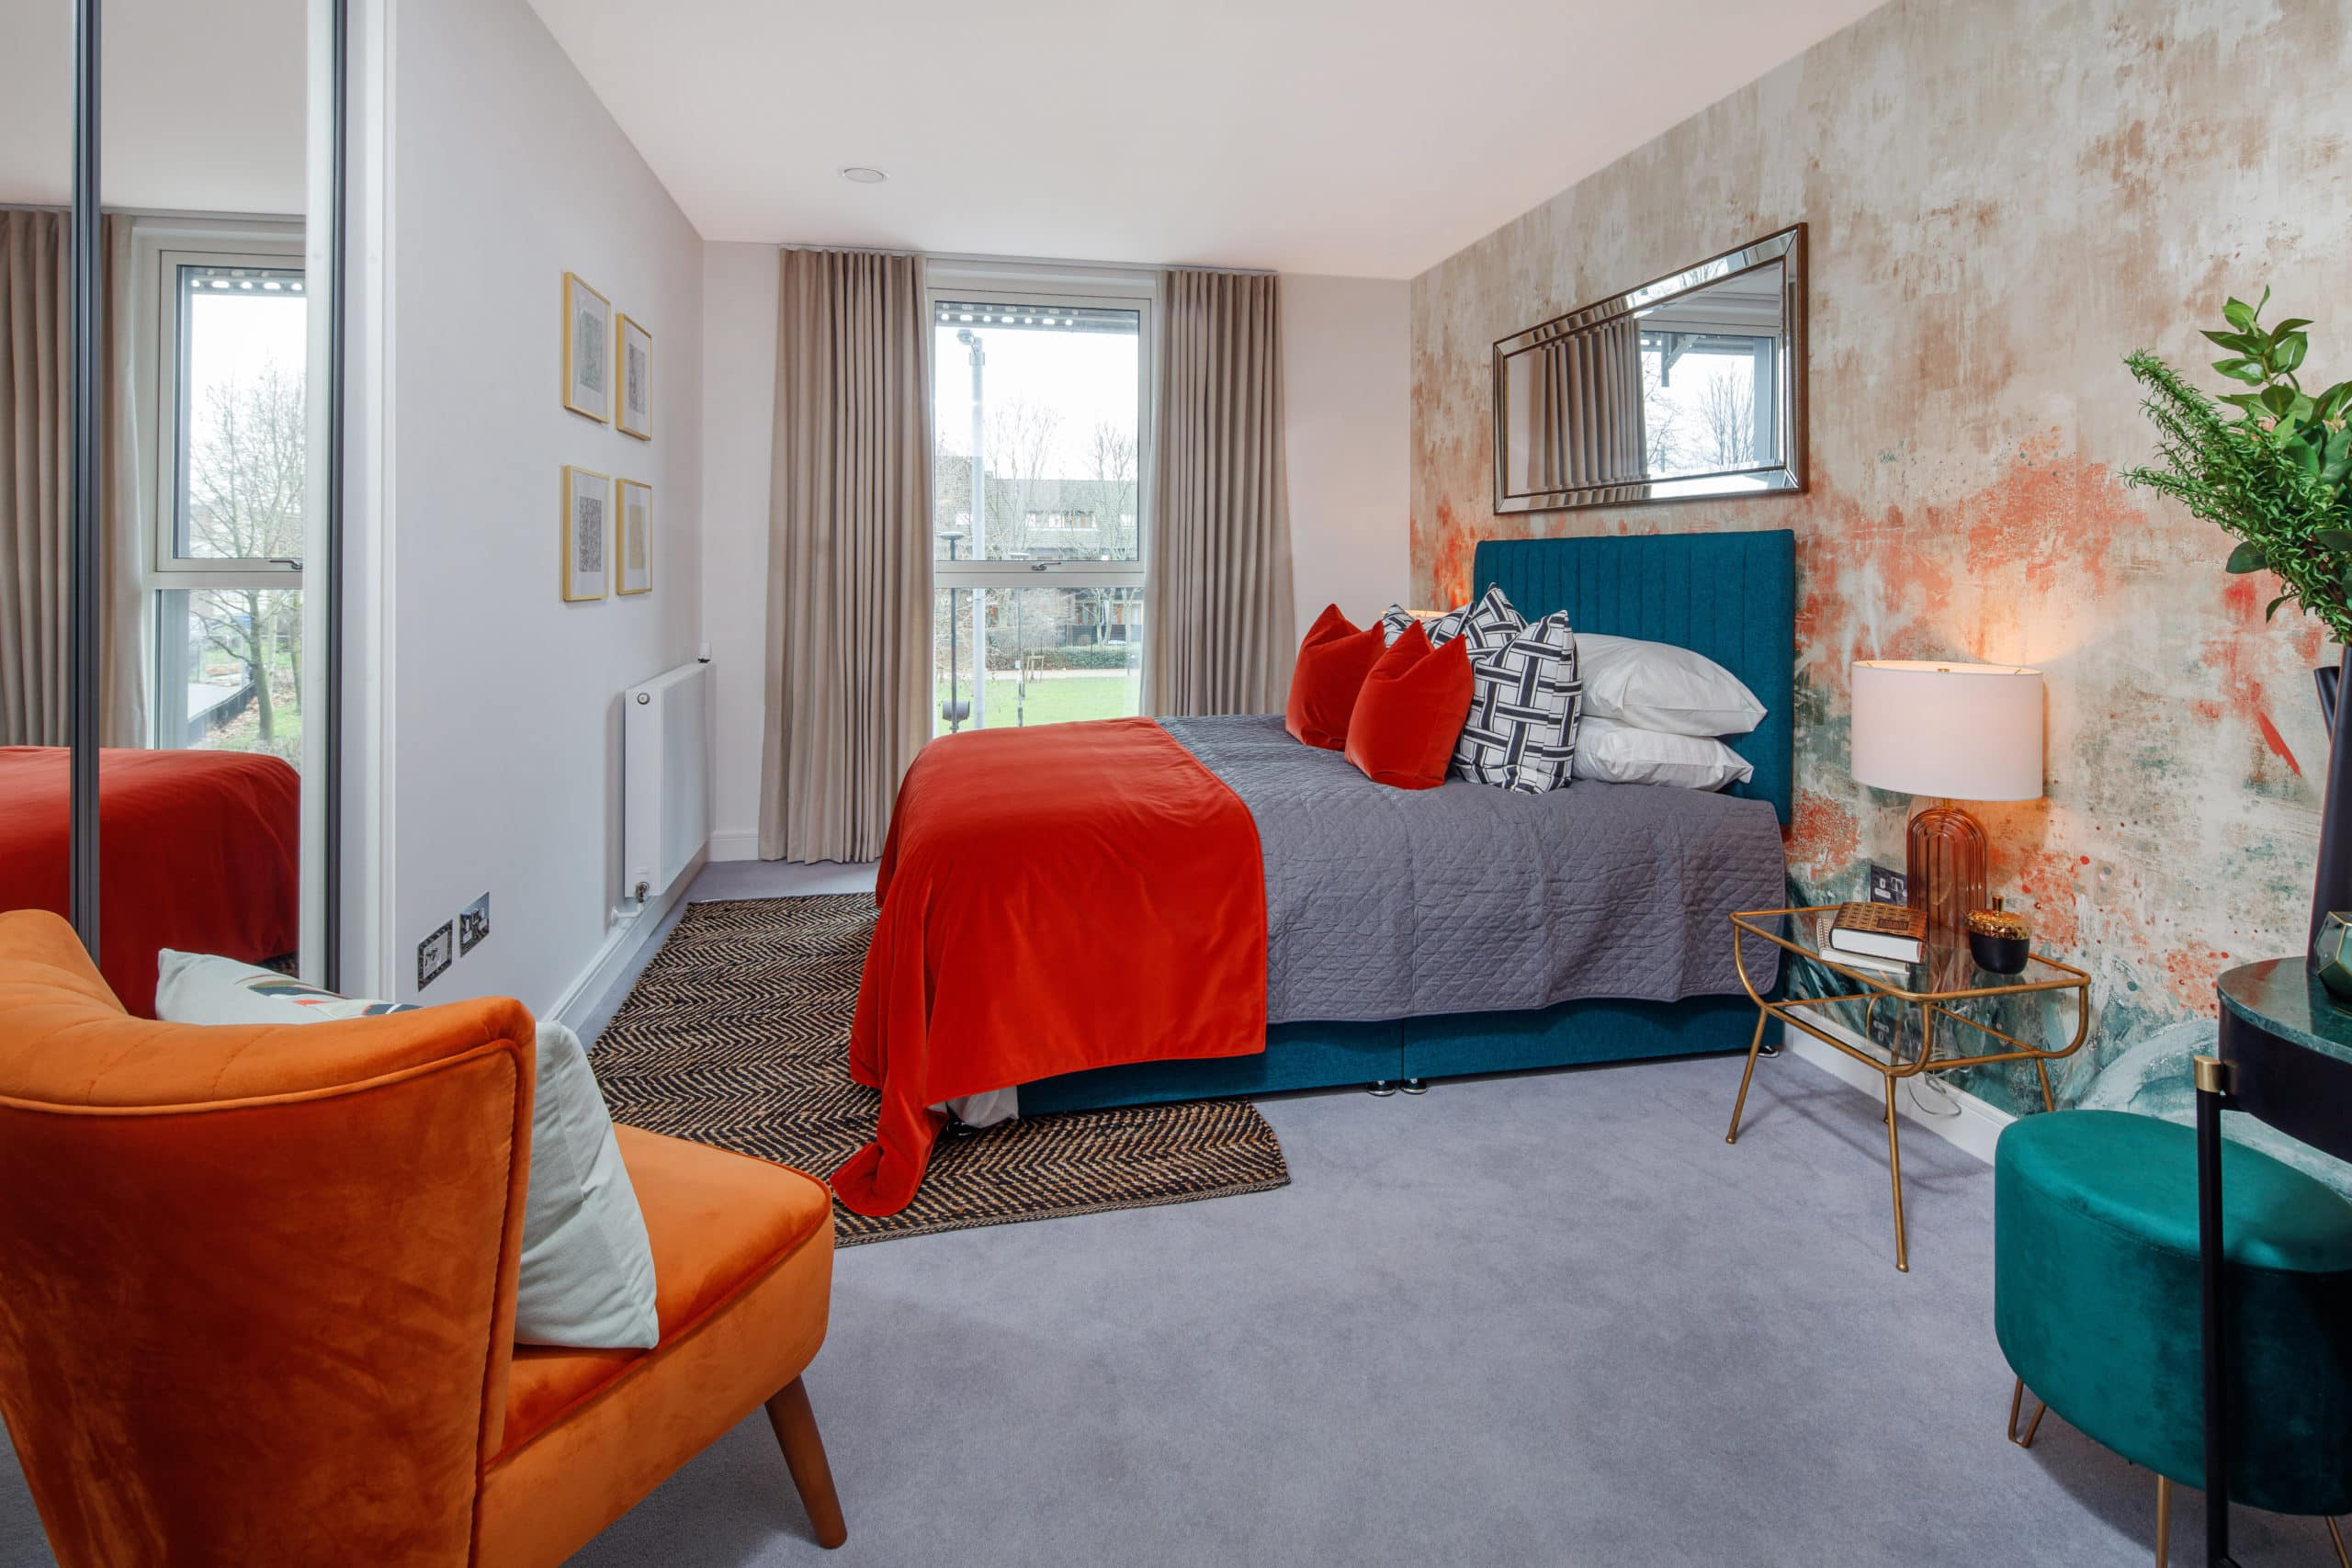 Bedroom at The Chain by L&Q - Shared Ownership & Help to Buy available on Share to Buy